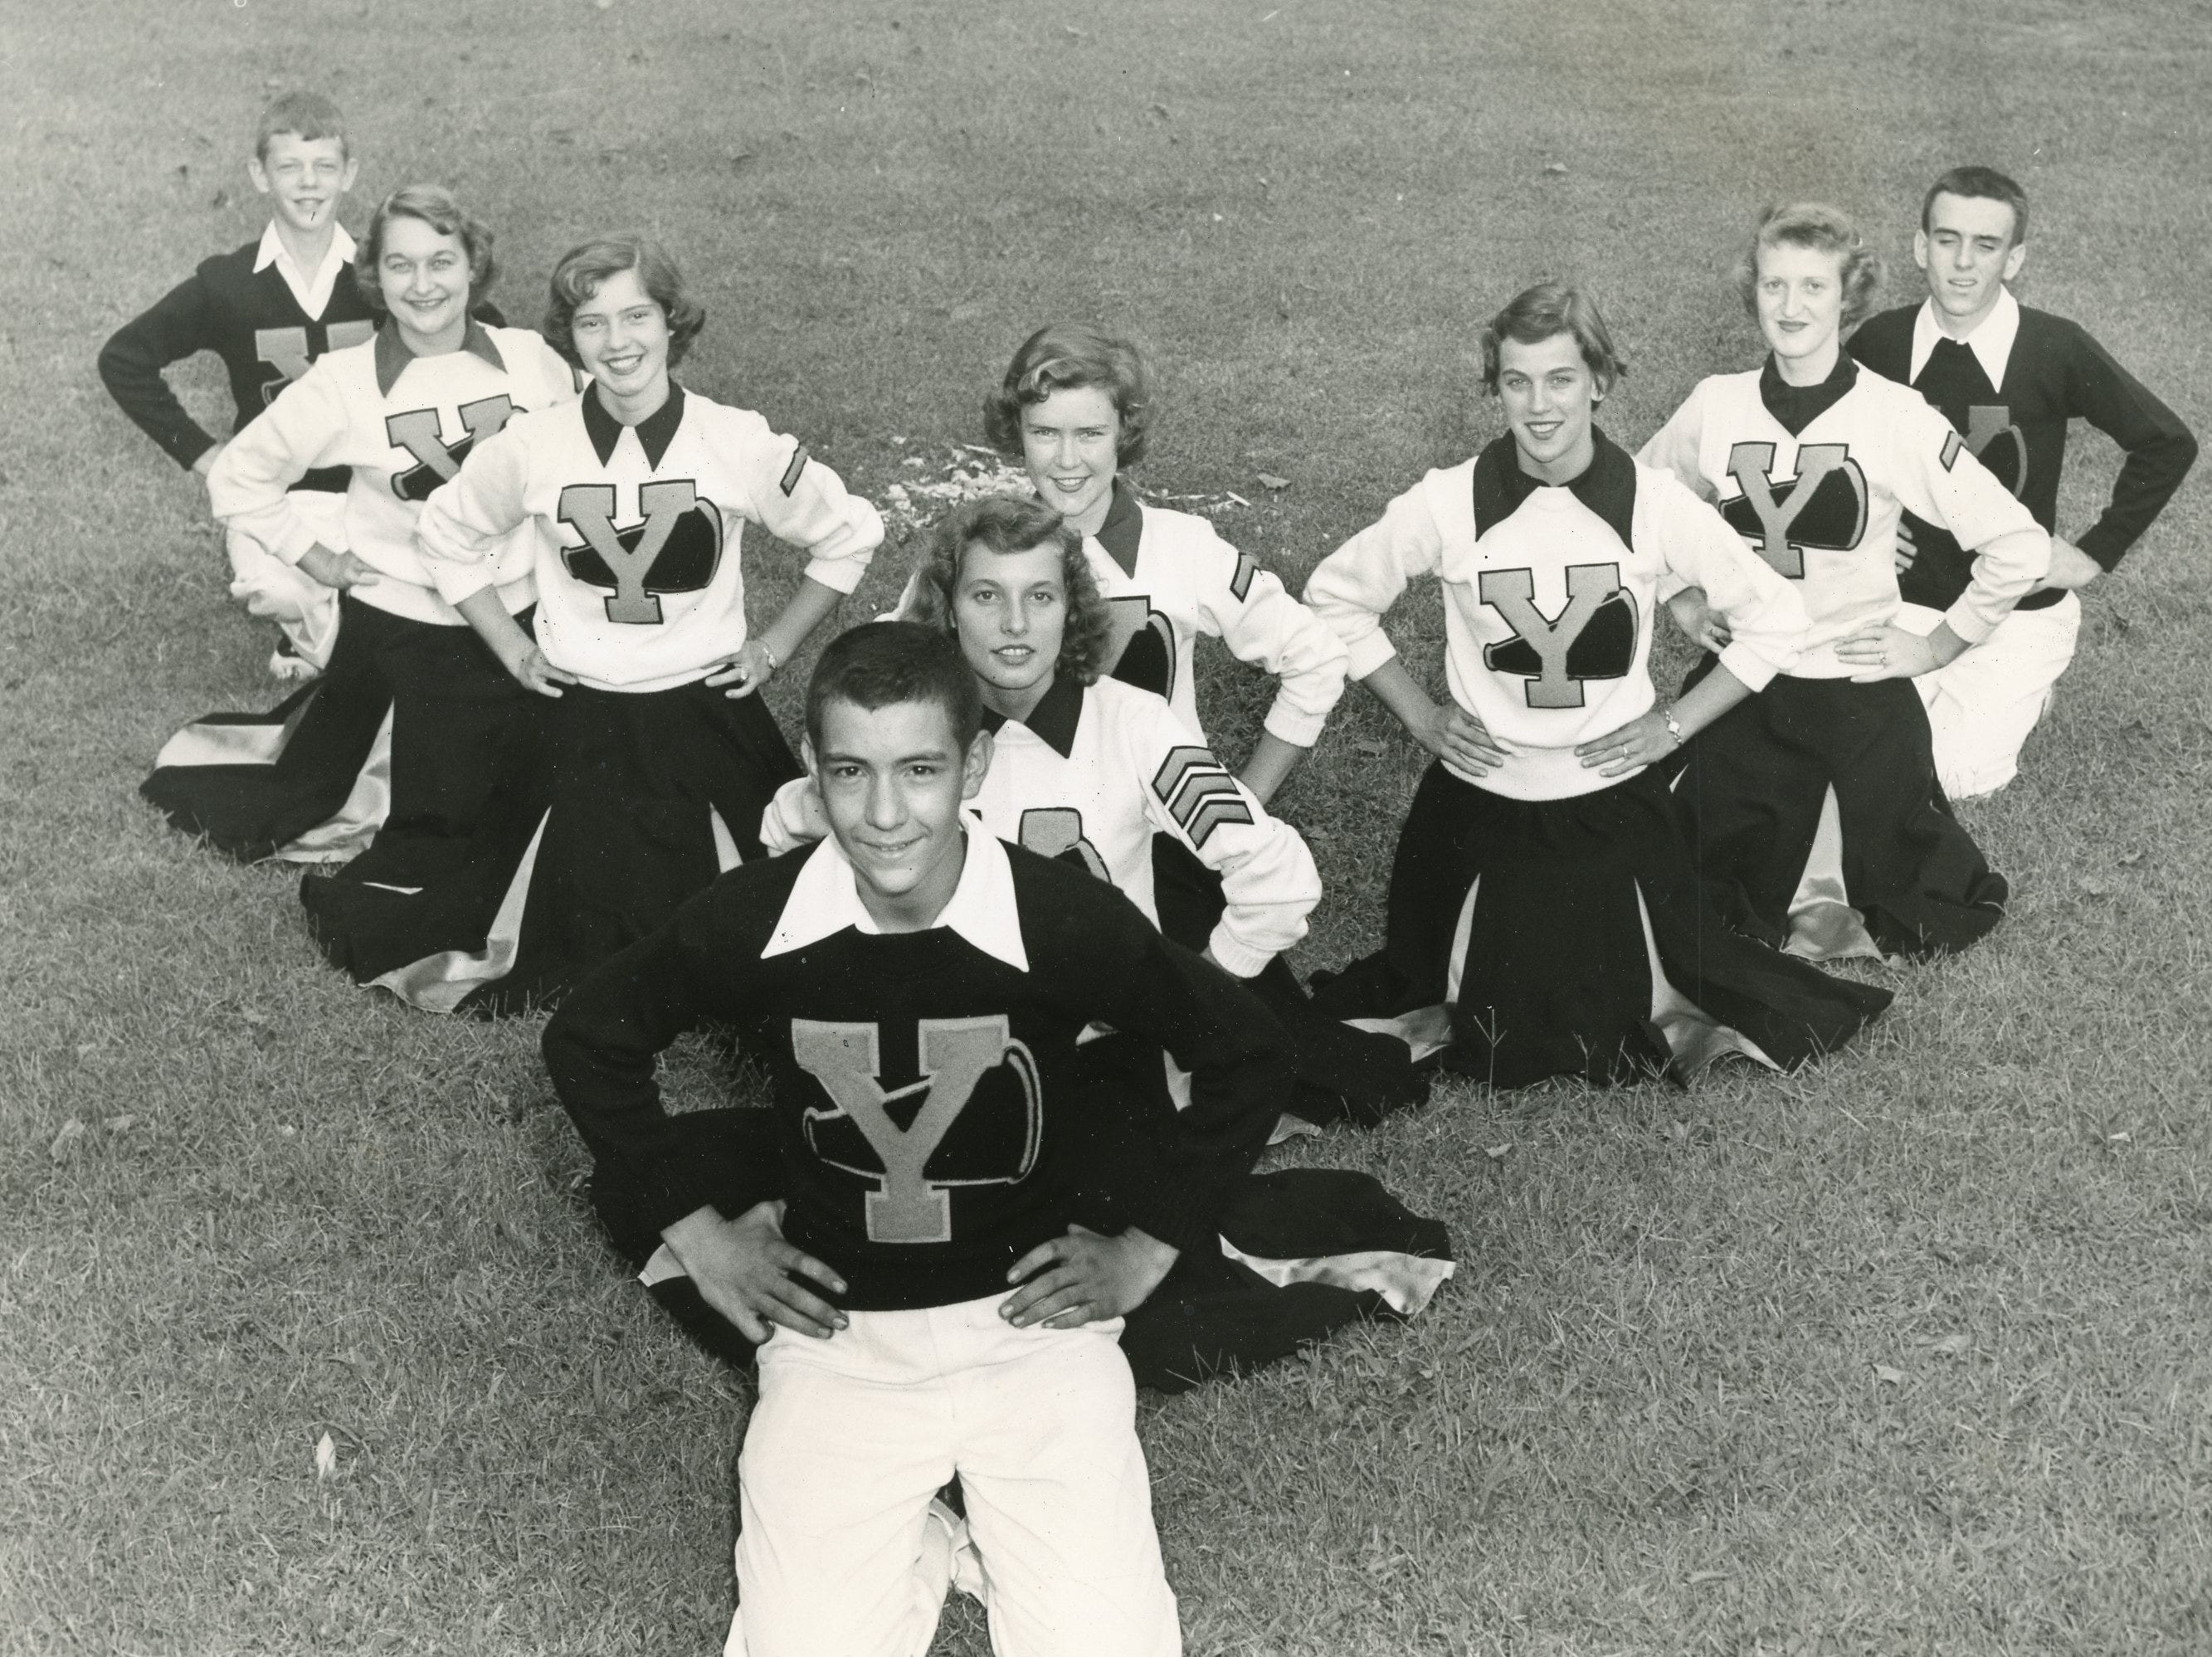 Young High cheerleaders in an undated photo. Pictured are (from front) Faymer Hutchens, Marianne Davenport, (back) Bill Goodwin, Judy Weaver, Barbara Price, Glenda Giles, Anne Beard, Faye Tucker and Clyde Julian.